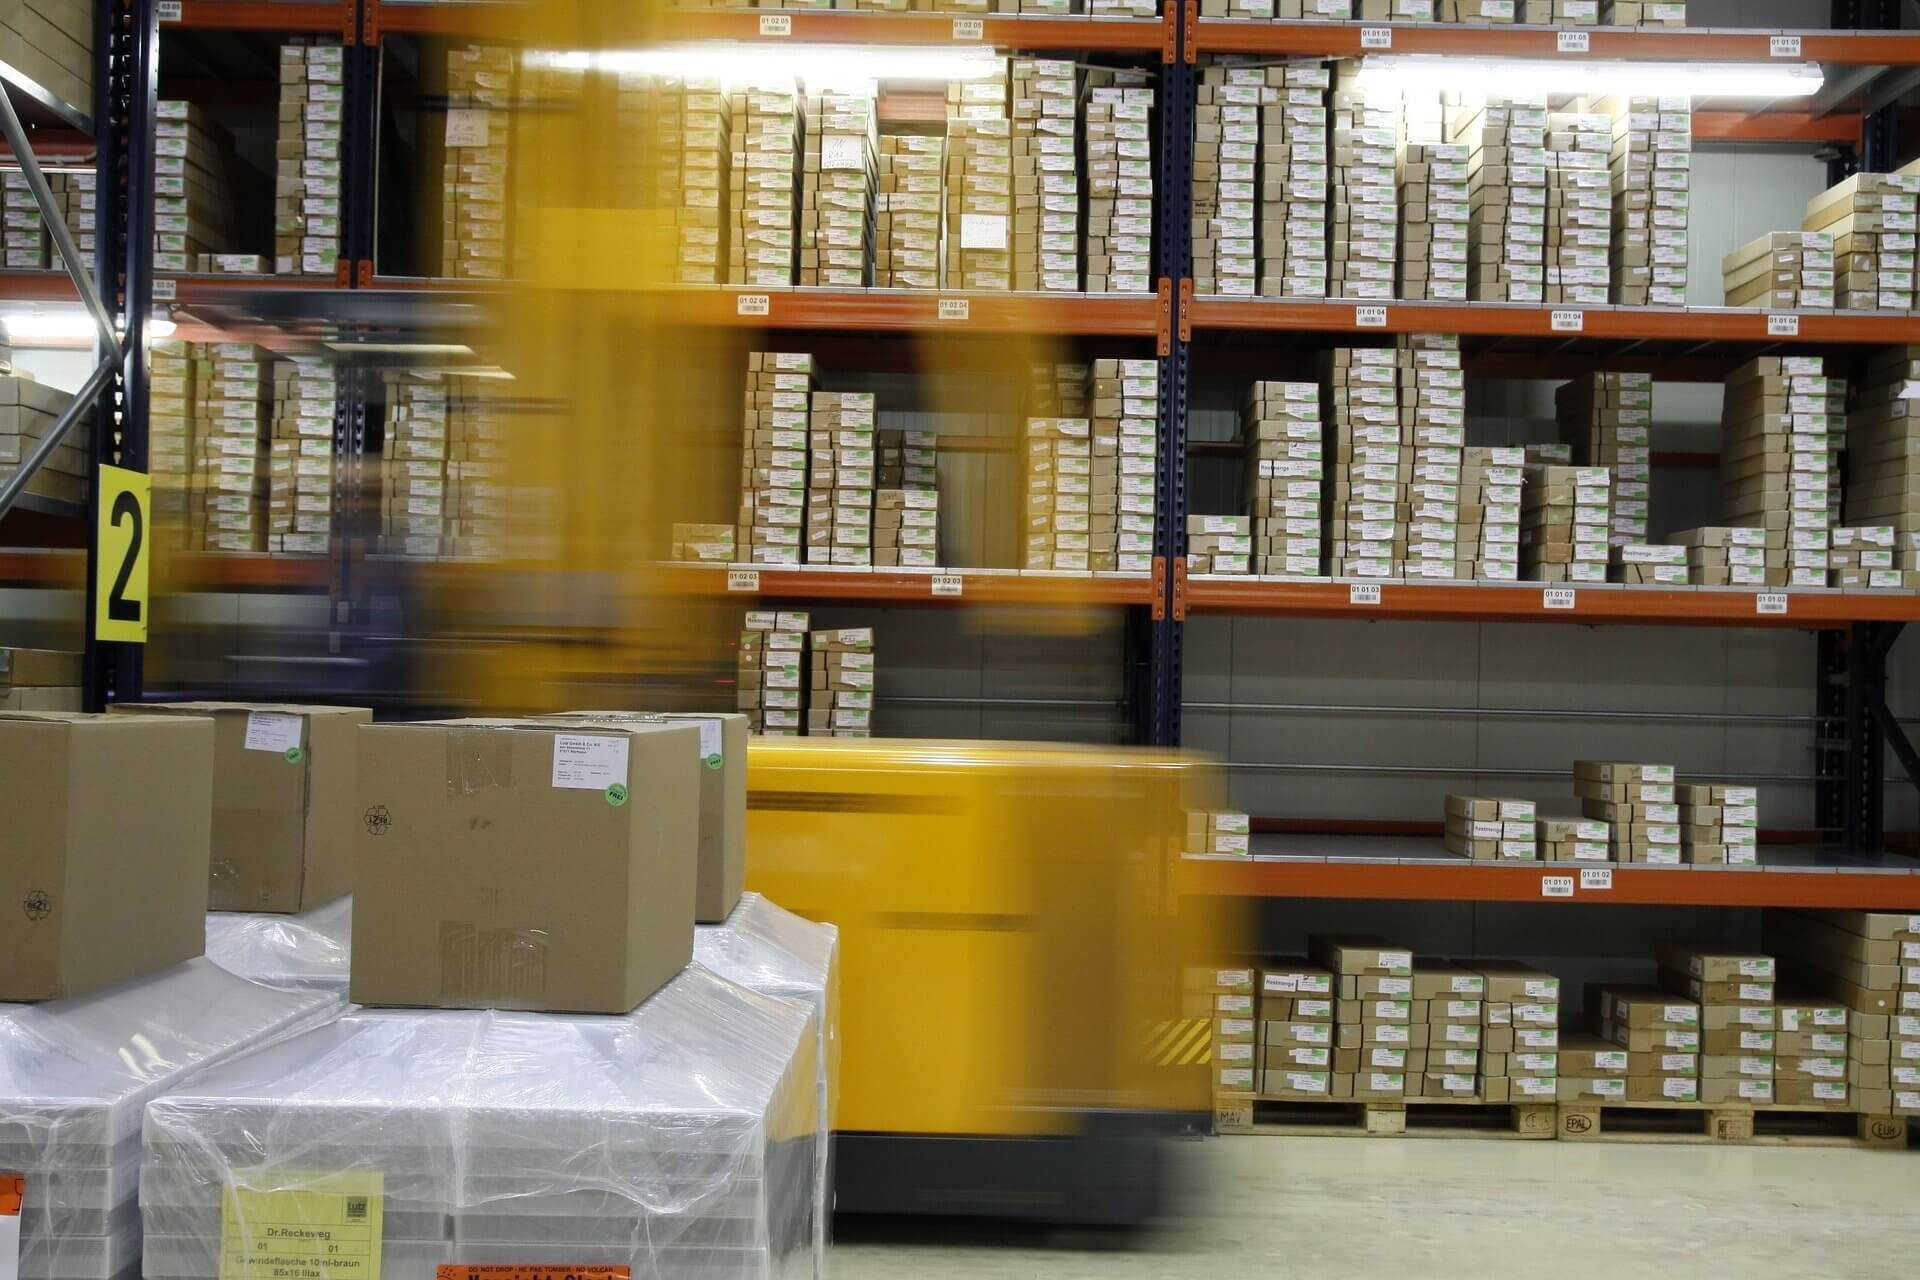 How to plan and track package deliveries using your own fleet?